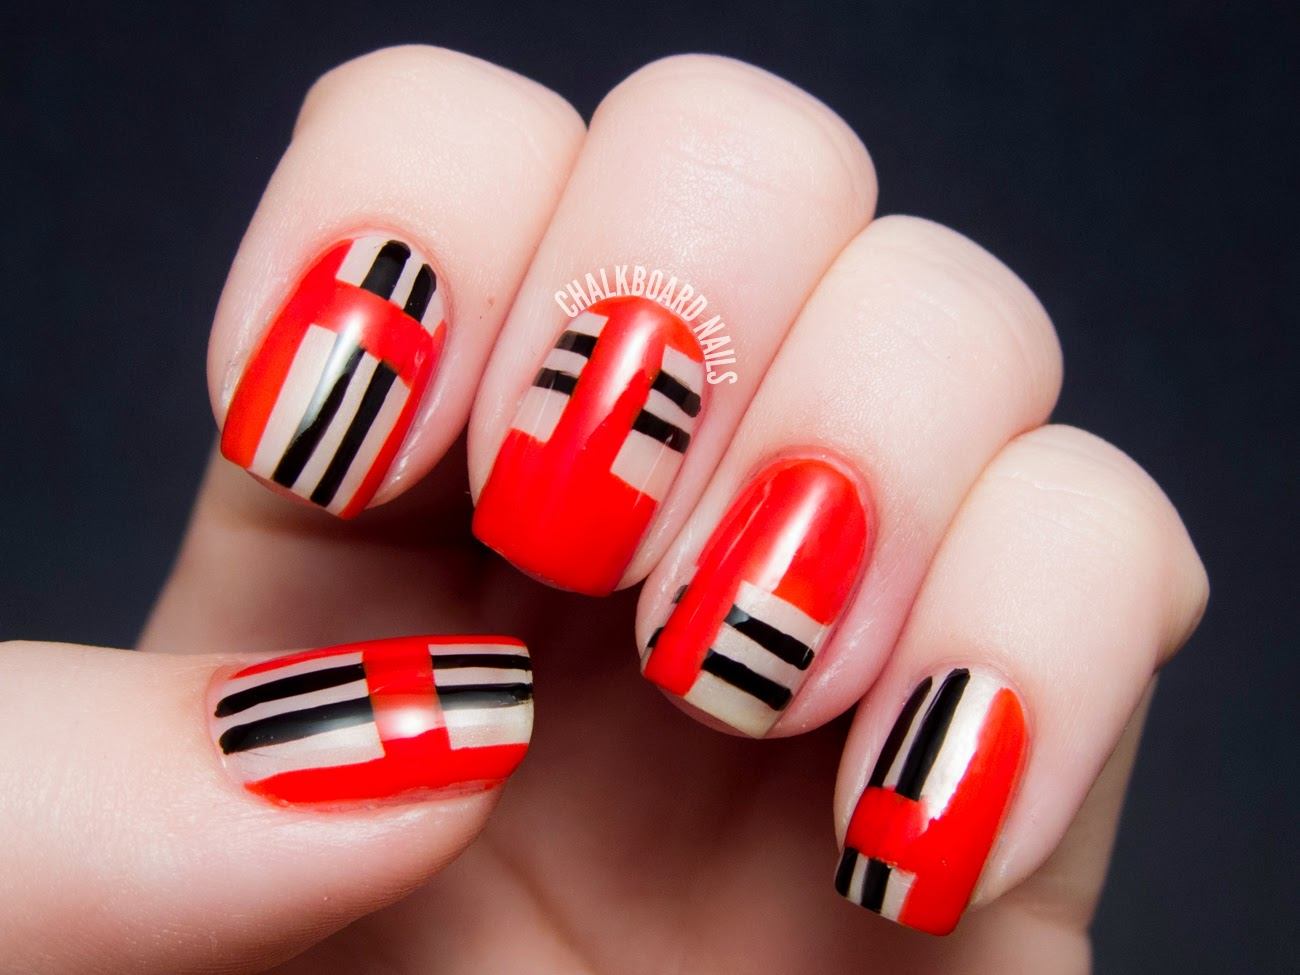 Nail art designs besides red nail art designs on top nail art images - View Images General Eye Catching Red Nail Art Design